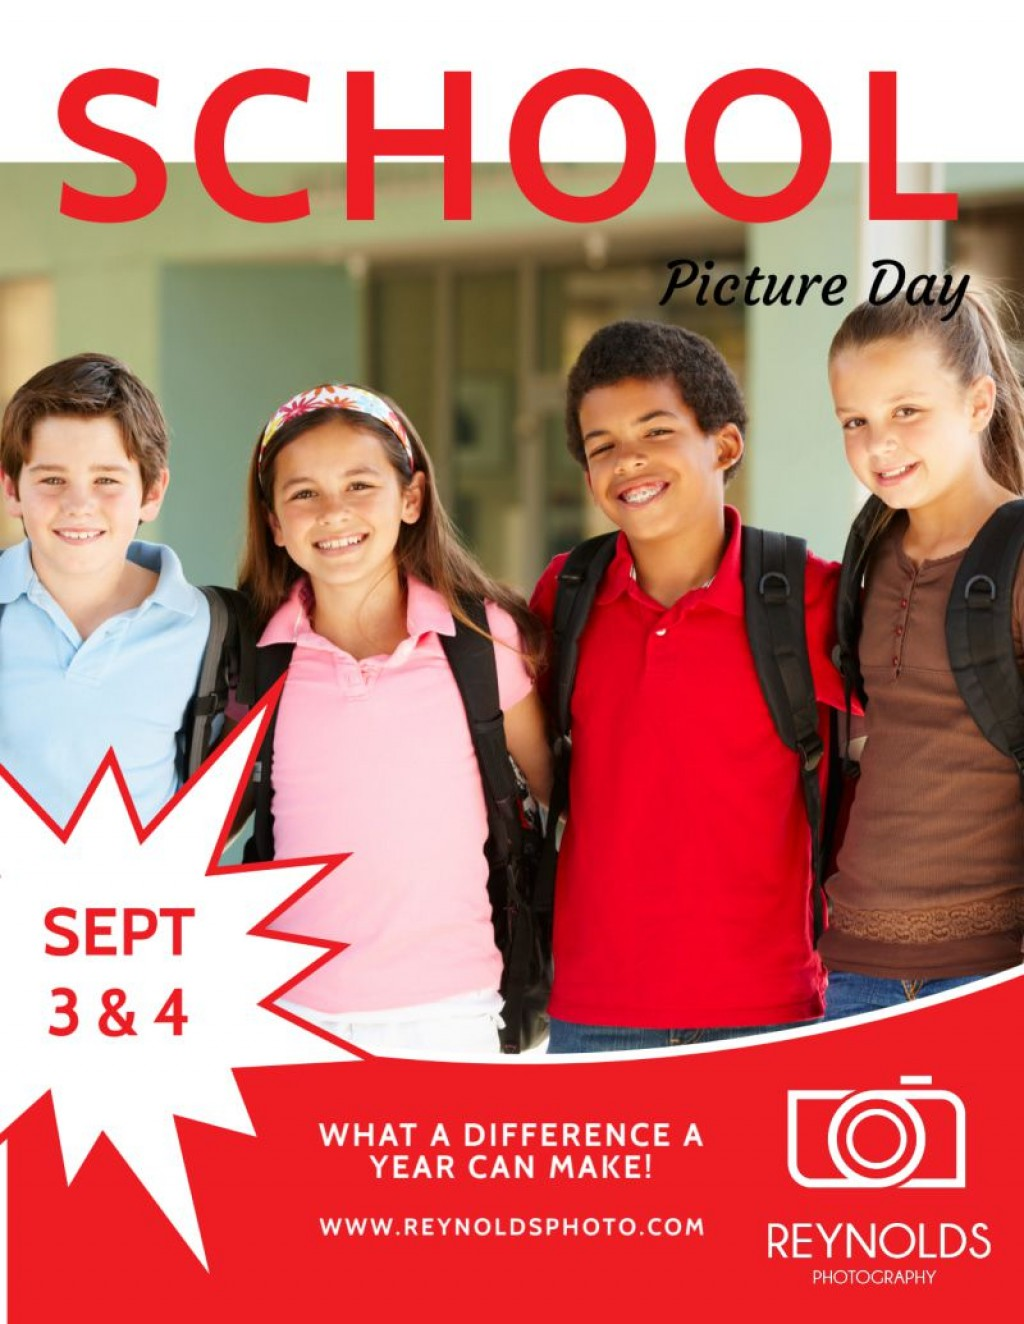 006 Exceptional School Picture Day Flyer Template Concept  FreeLarge